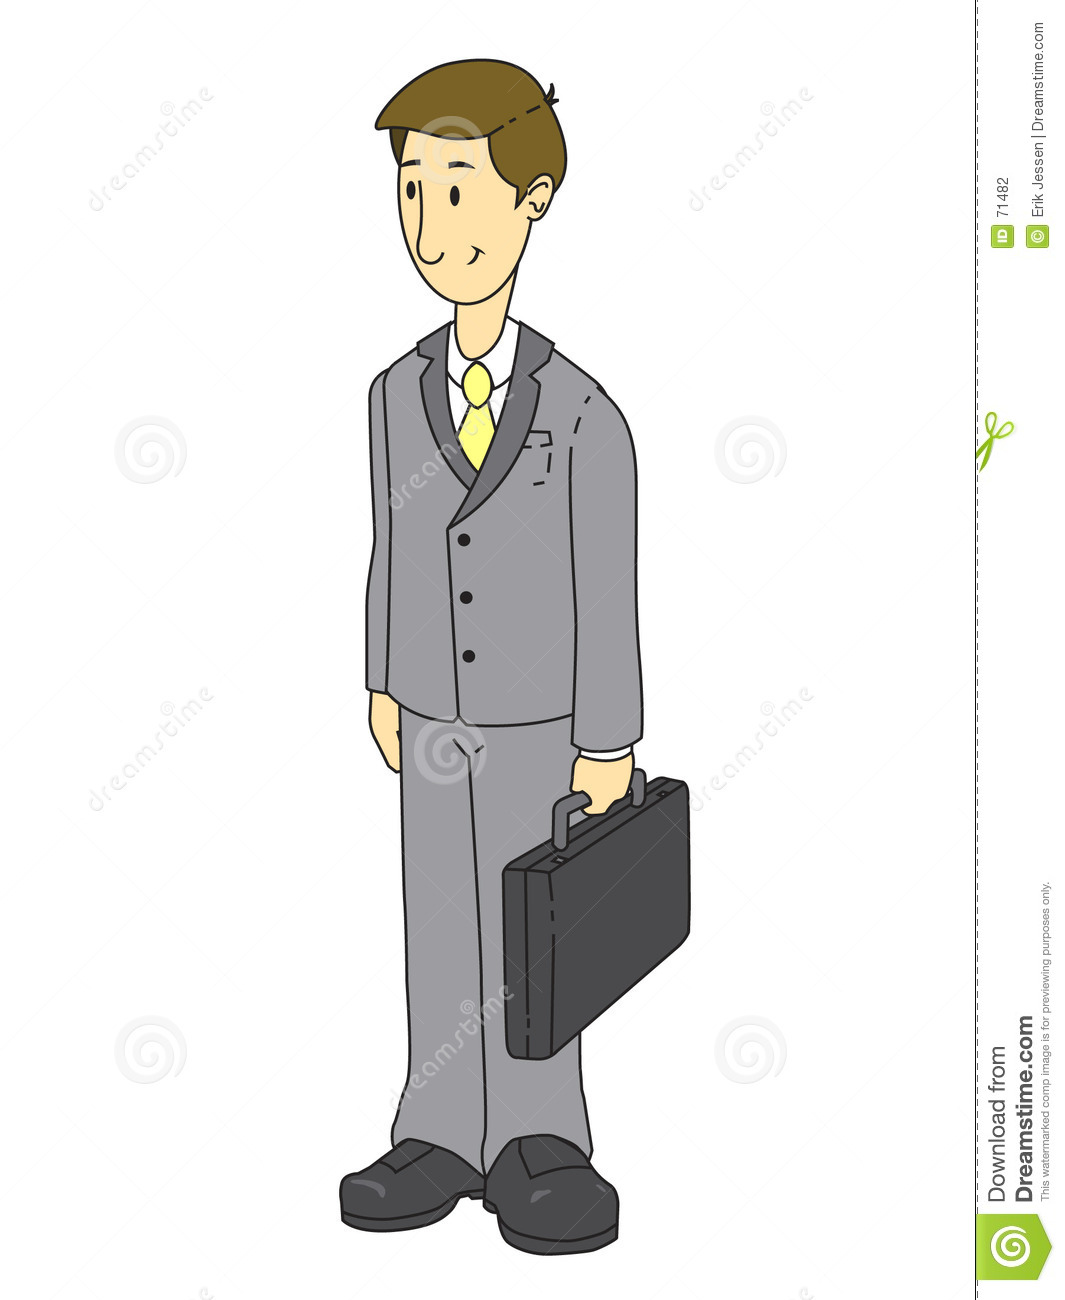 gray-suit-business-man-71482.jpg